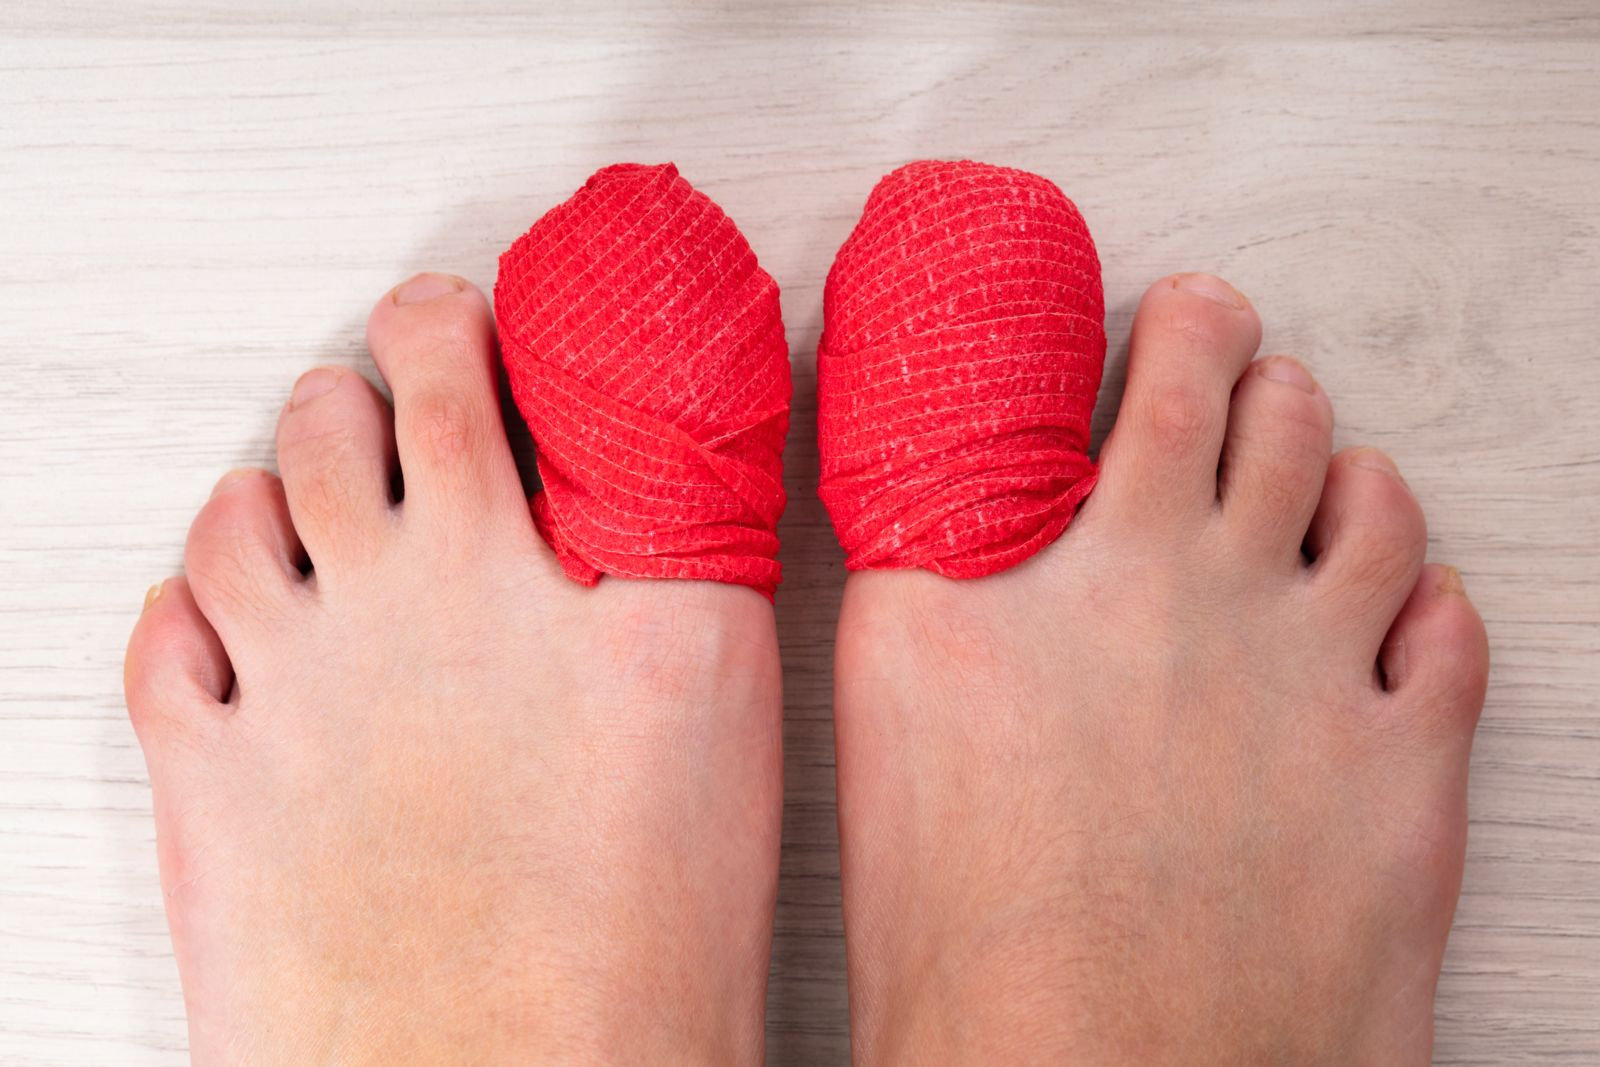 runners toenails are an injury caused by stress